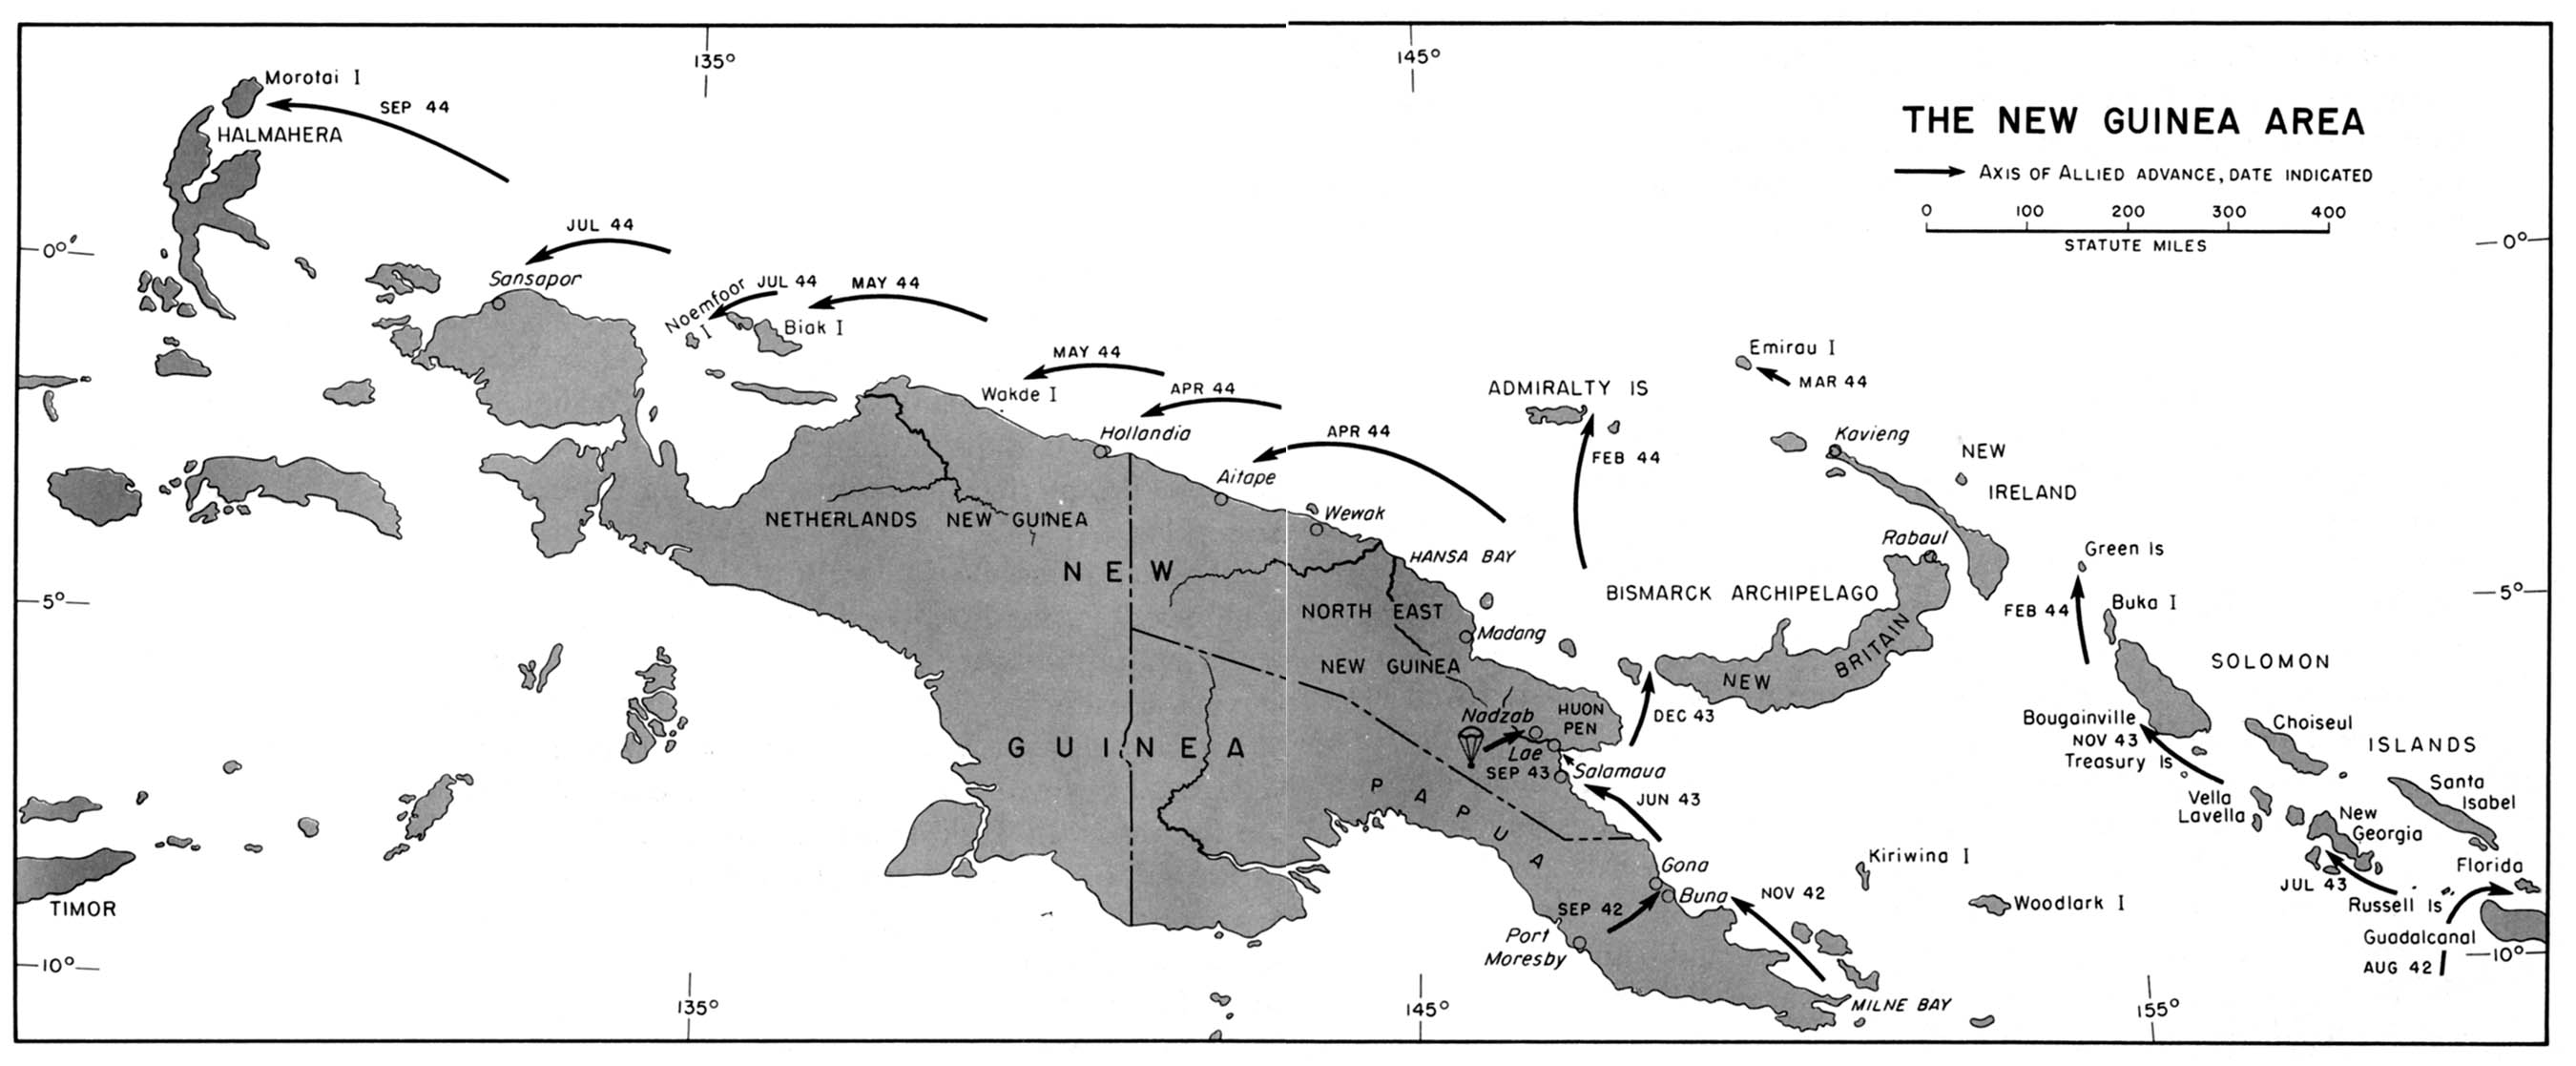 July 7 1943 axis history forum map new guinea area state master bena bena airfield built in 30s for gold mining support gumiabroncs Gallery